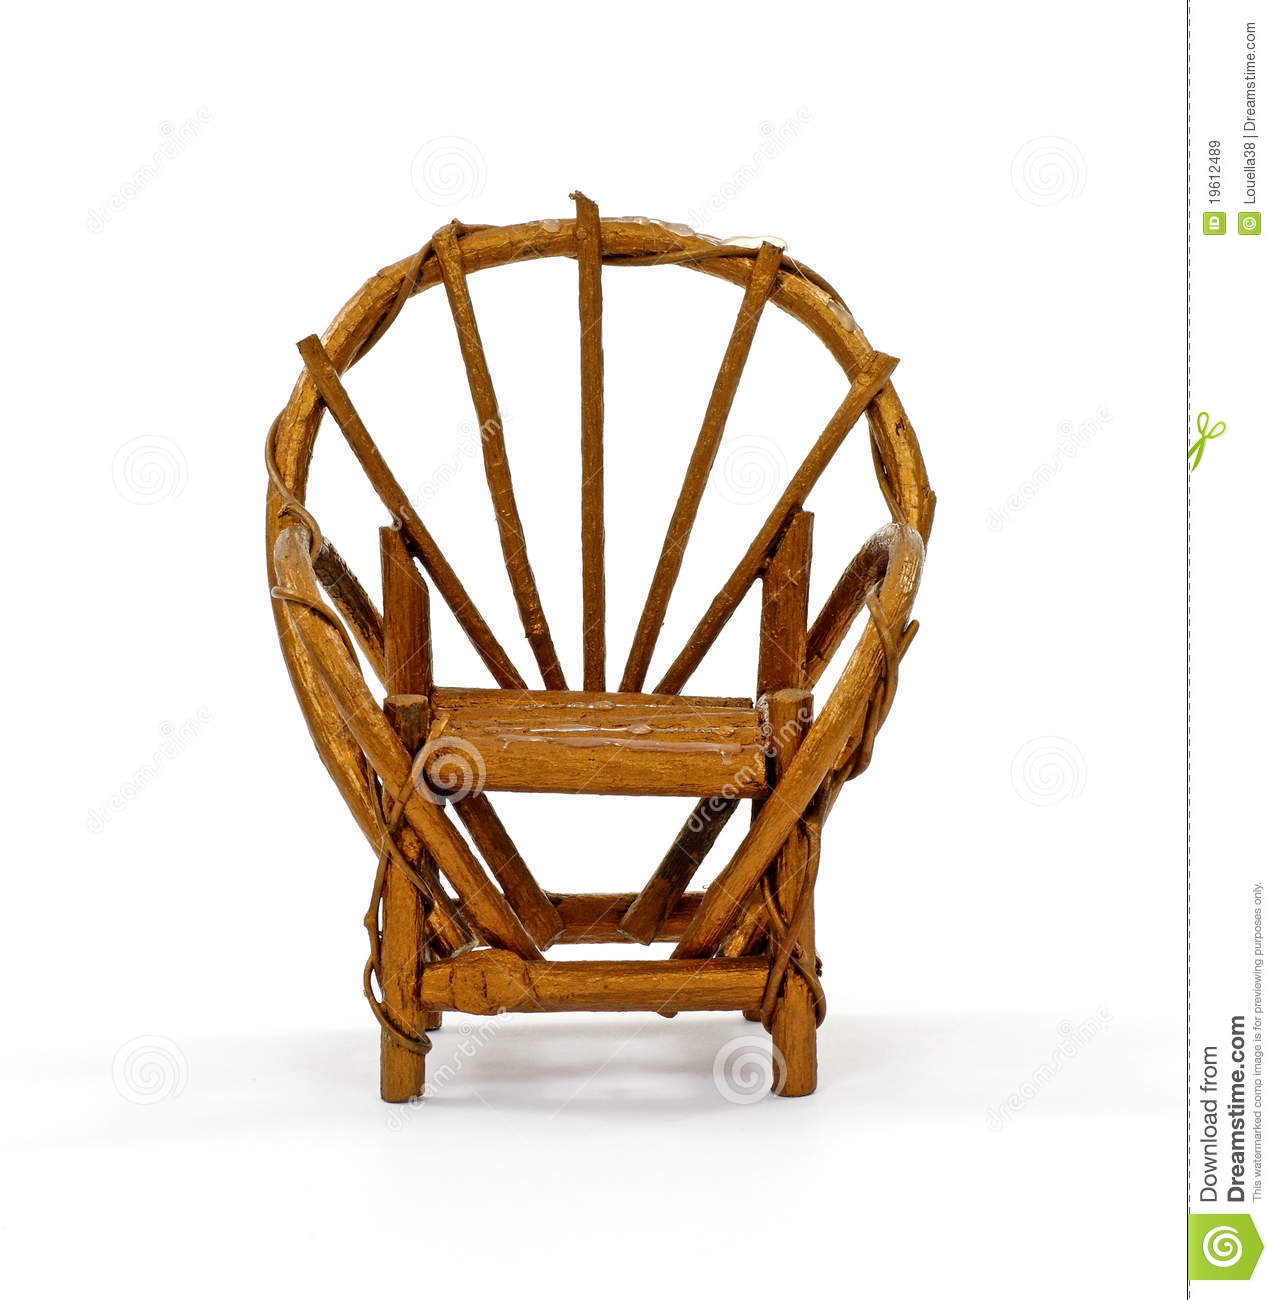 fan back wicker chair clear plastic covers walmart royalty free stock images image